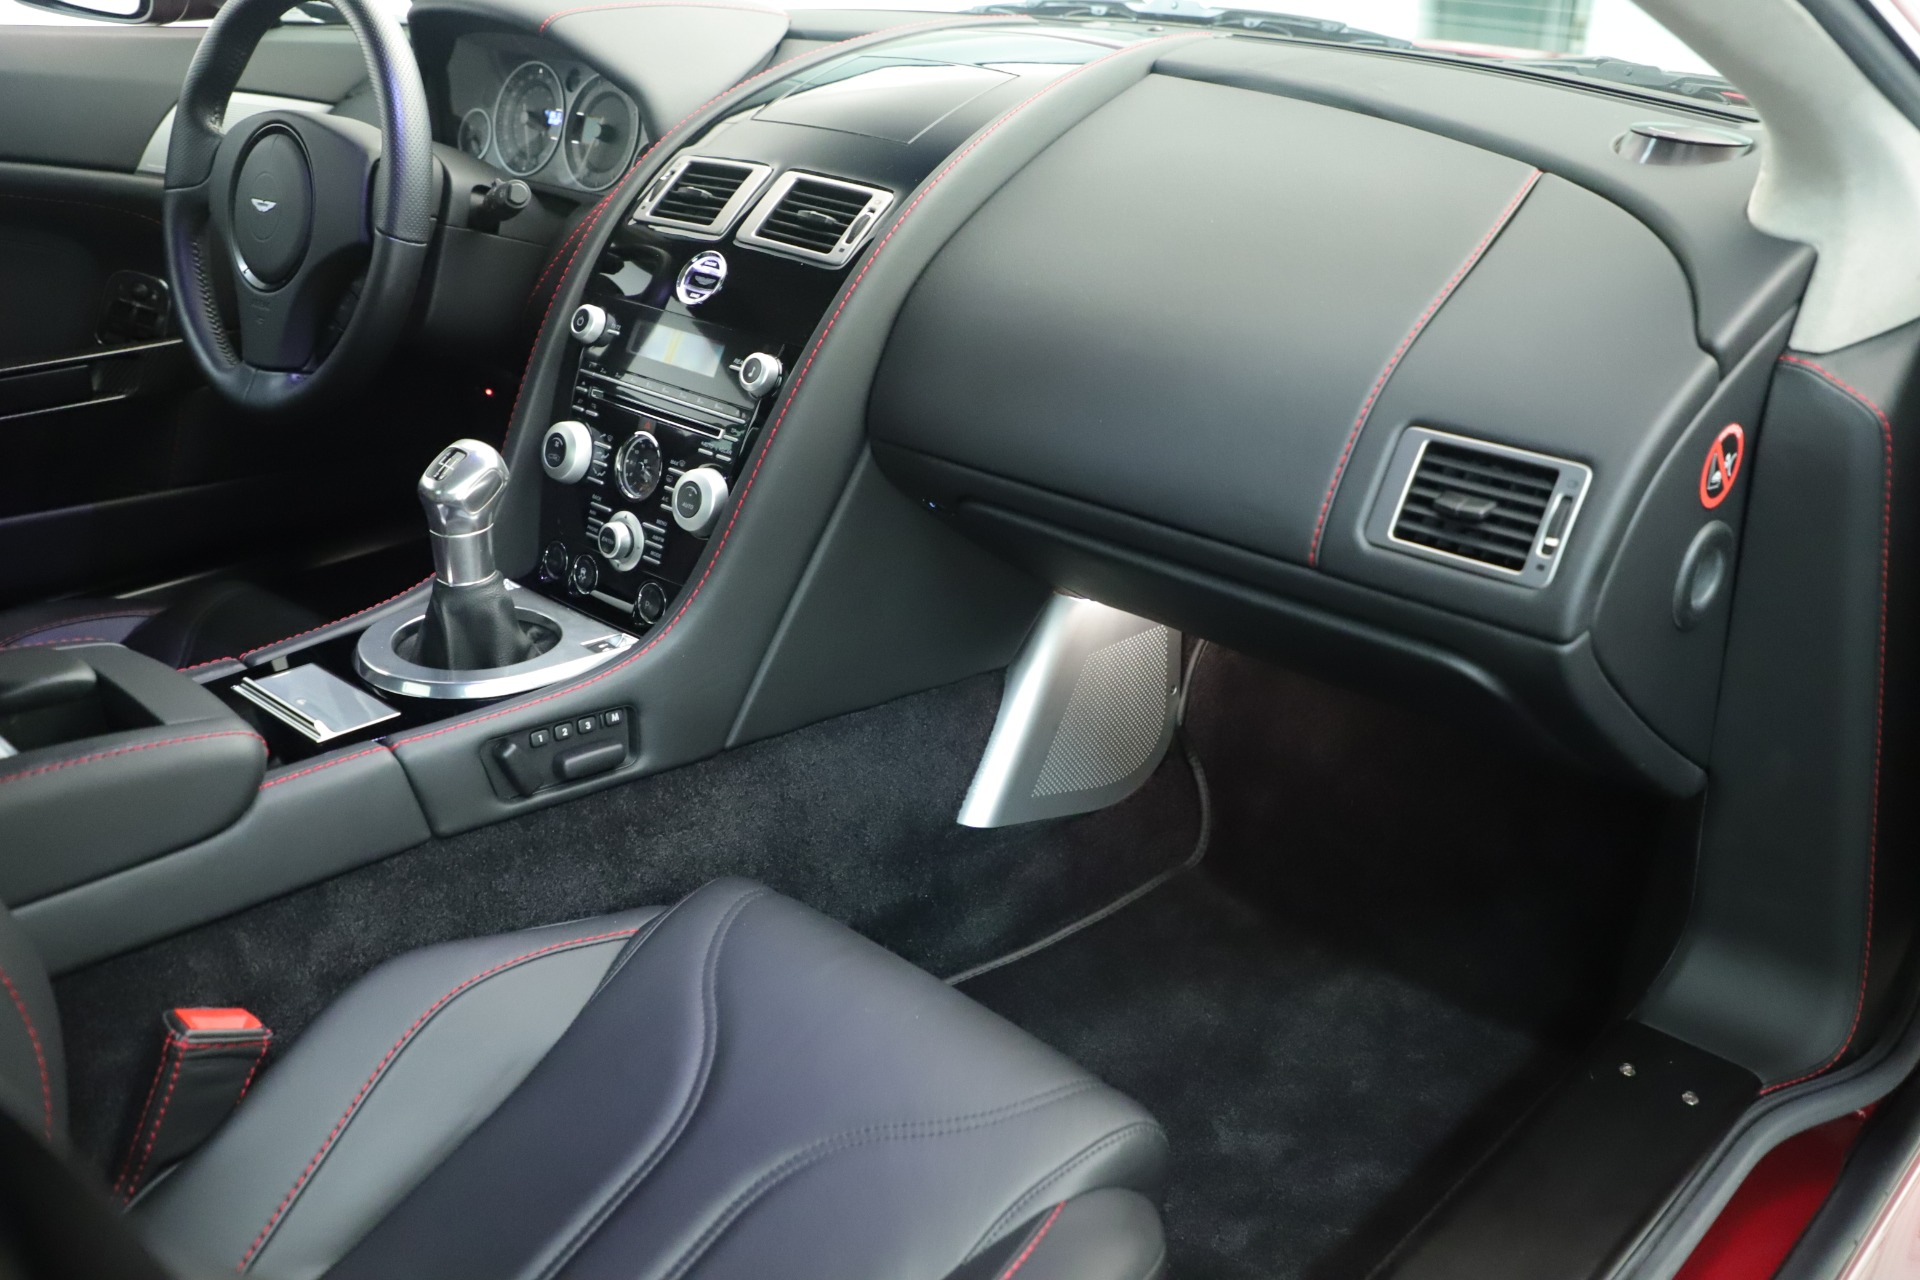 Used 2011 Aston Martin V12 Vantage Coupe For Sale In Greenwich, CT 3395_p29